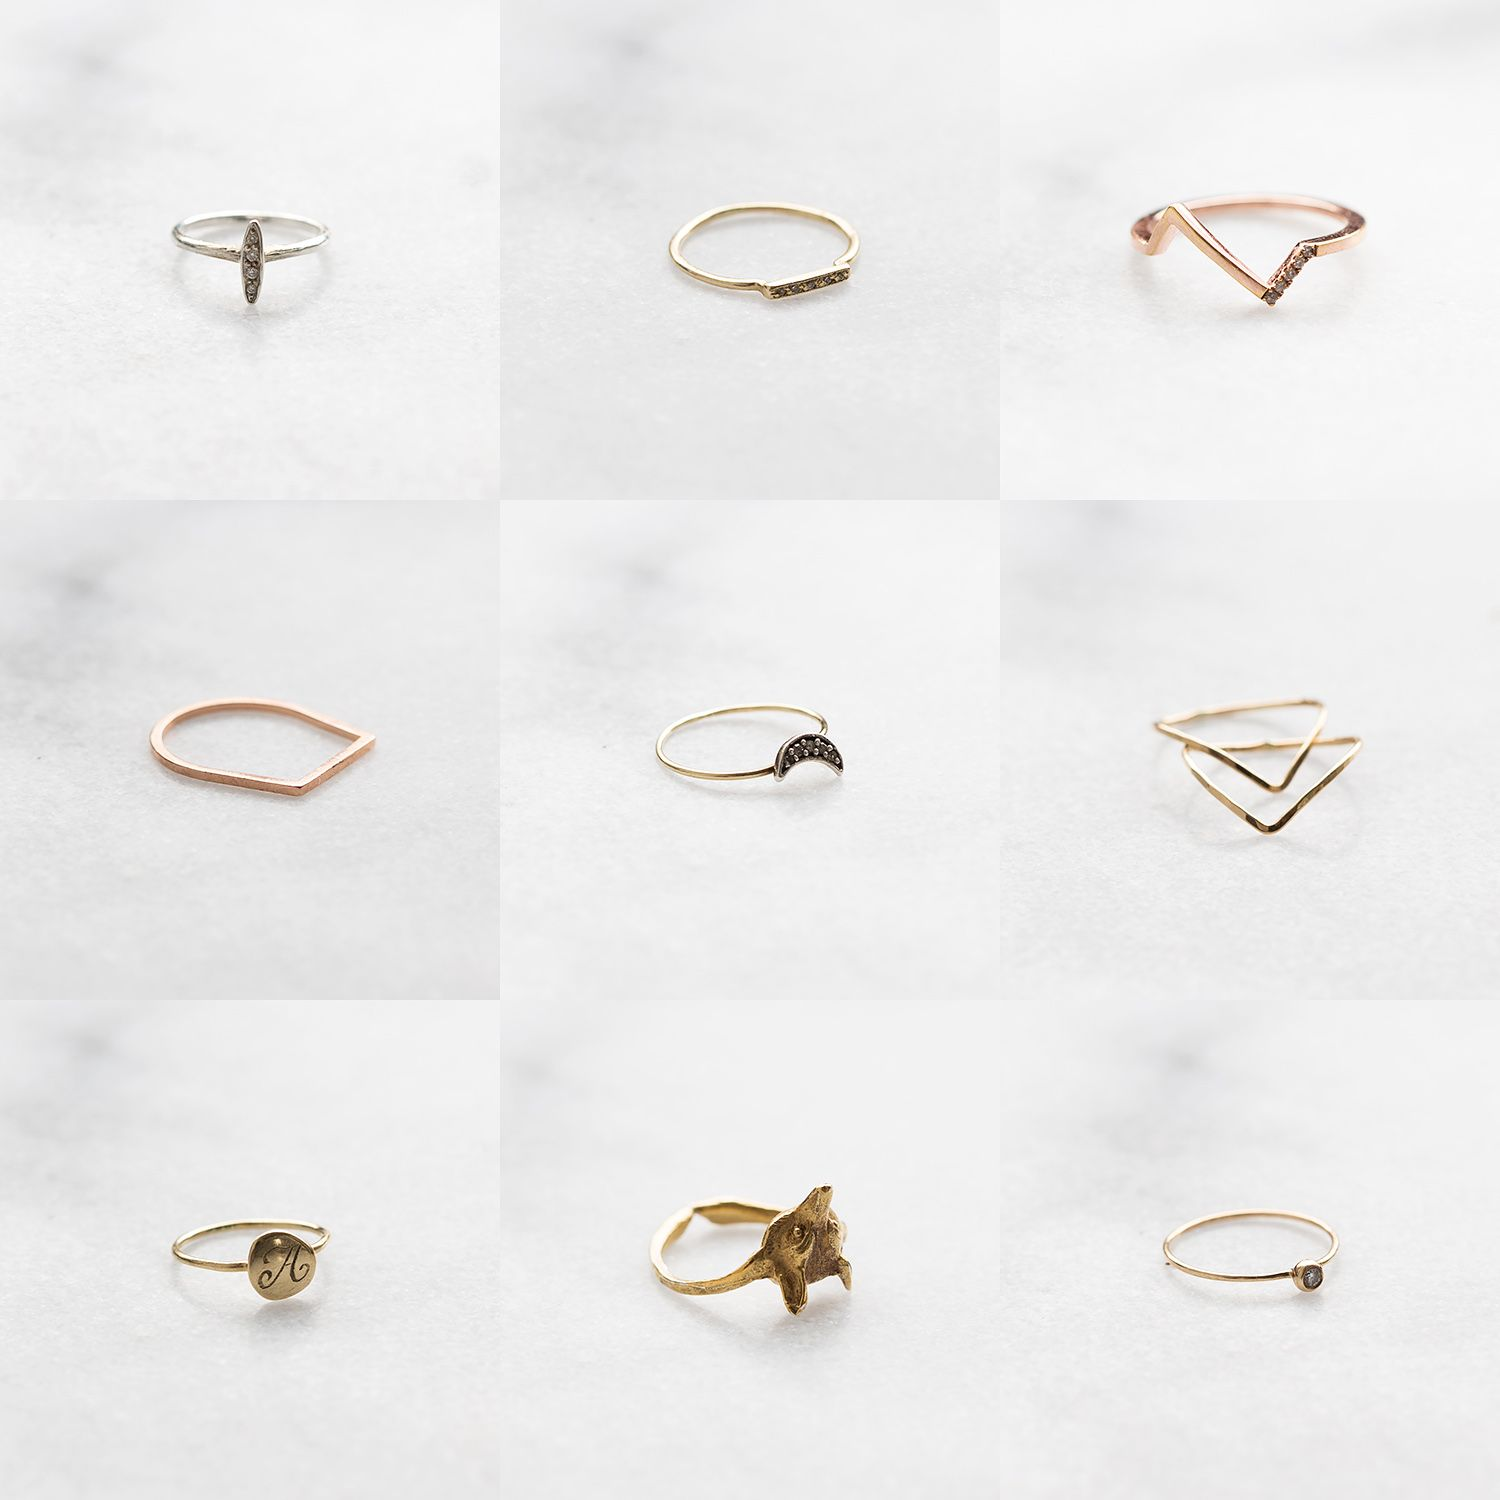 Image result for minimalist jewelry ring